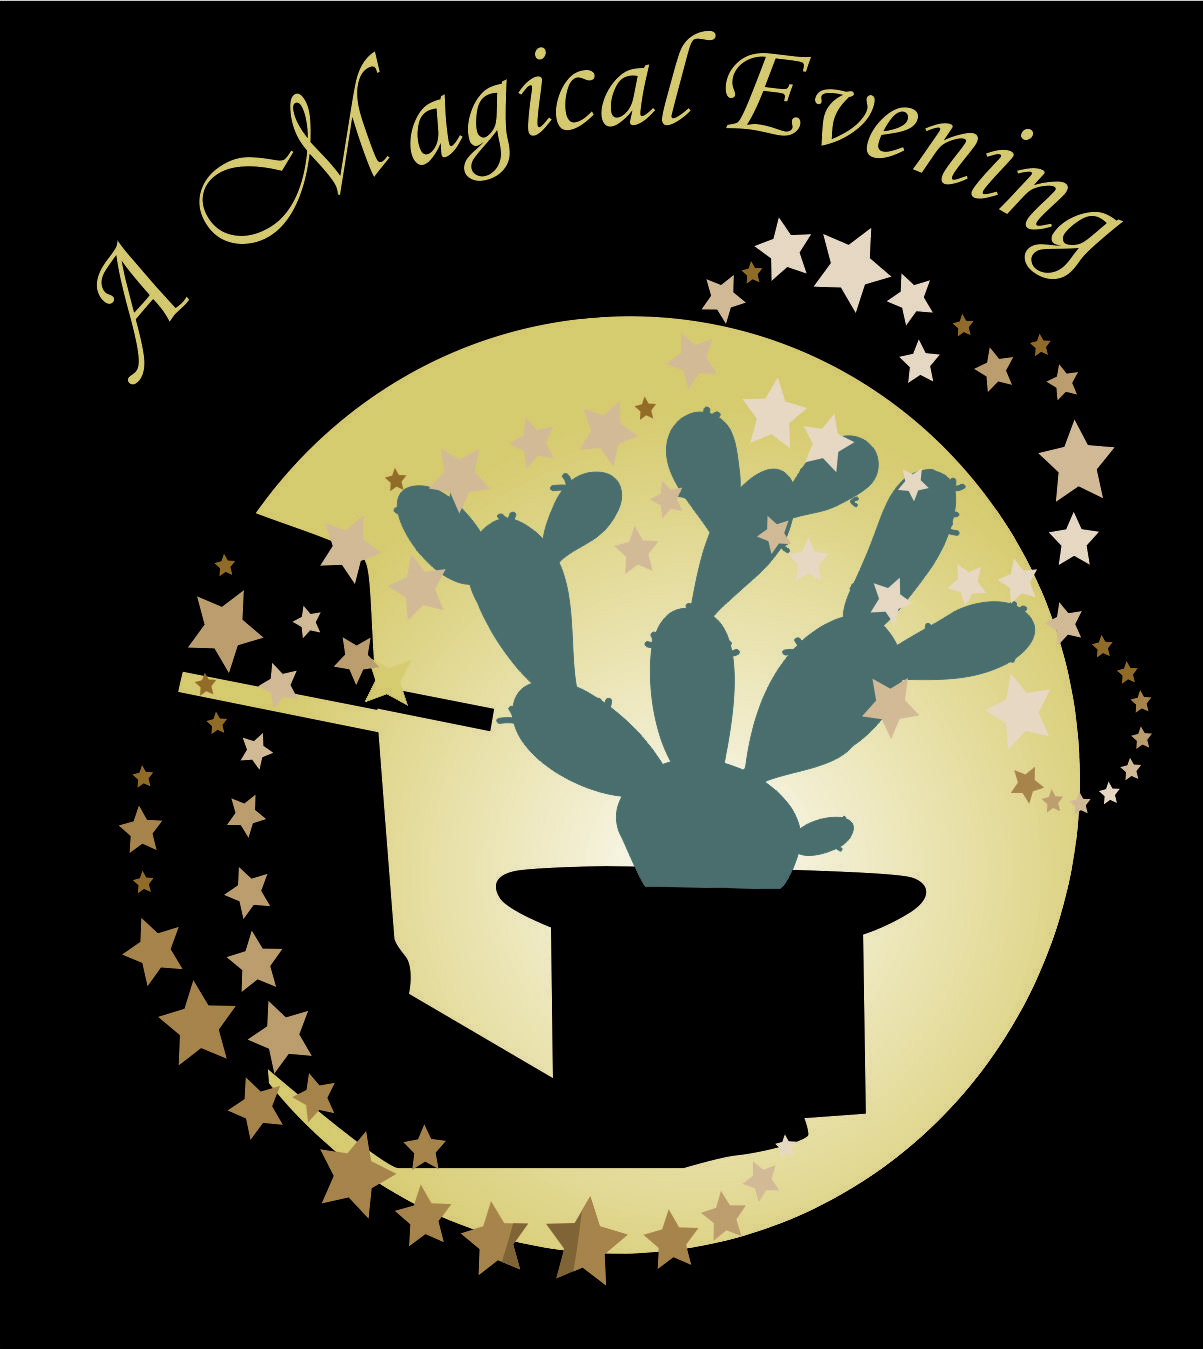 Yellow text which says A magical evening is above a circular graphic of a hand holding a black hat waving a magic wand over a cactus